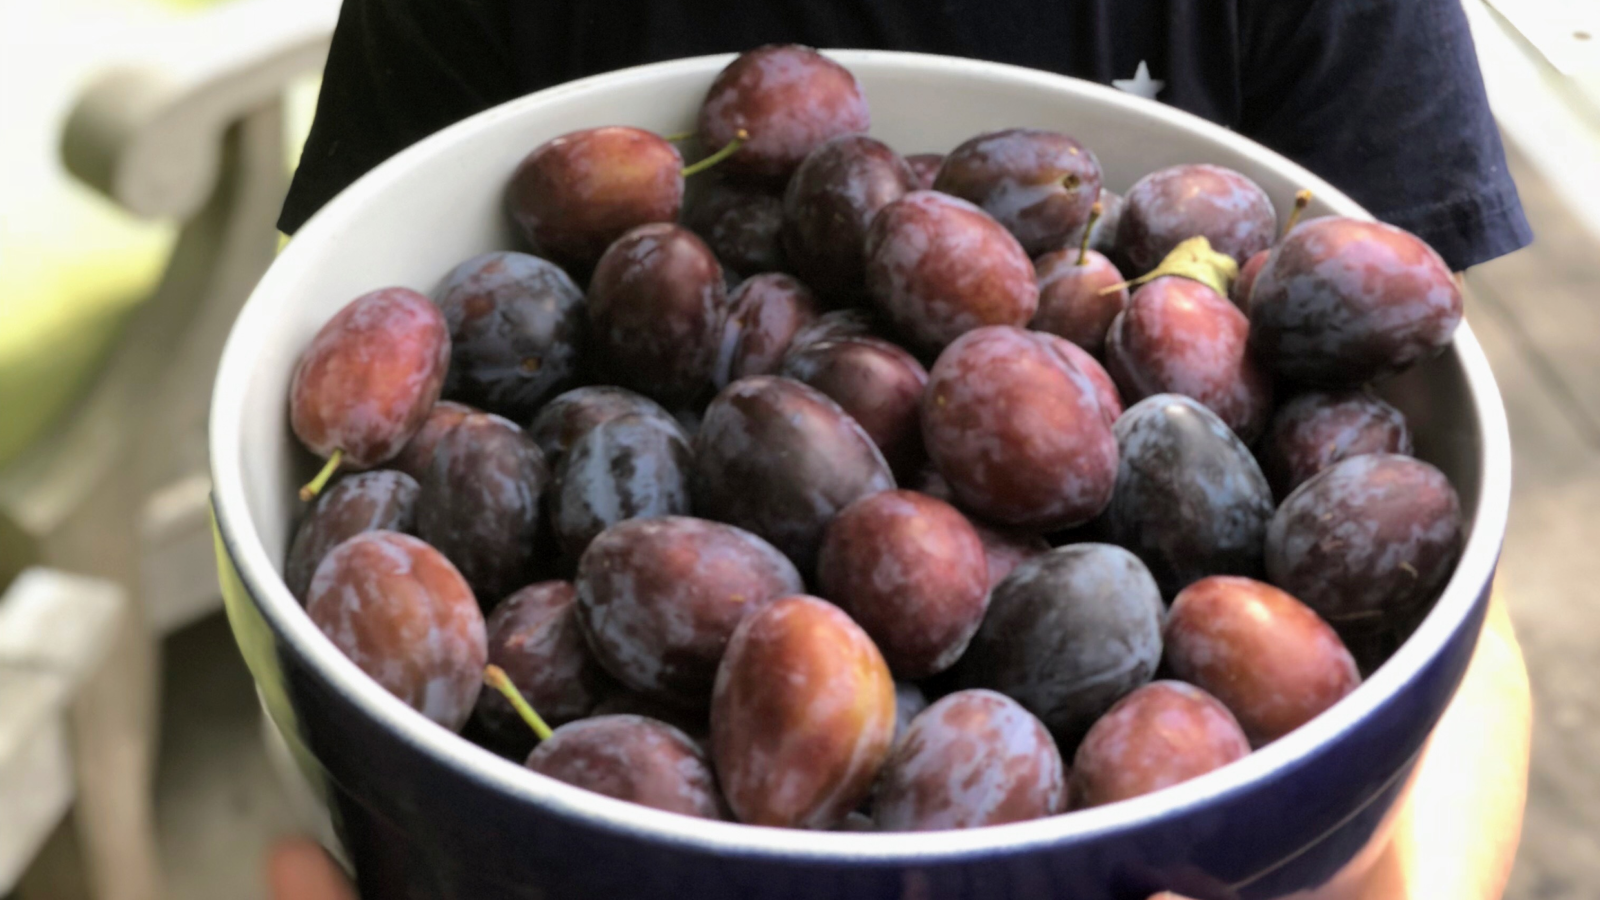 A bowl full of ripe plums